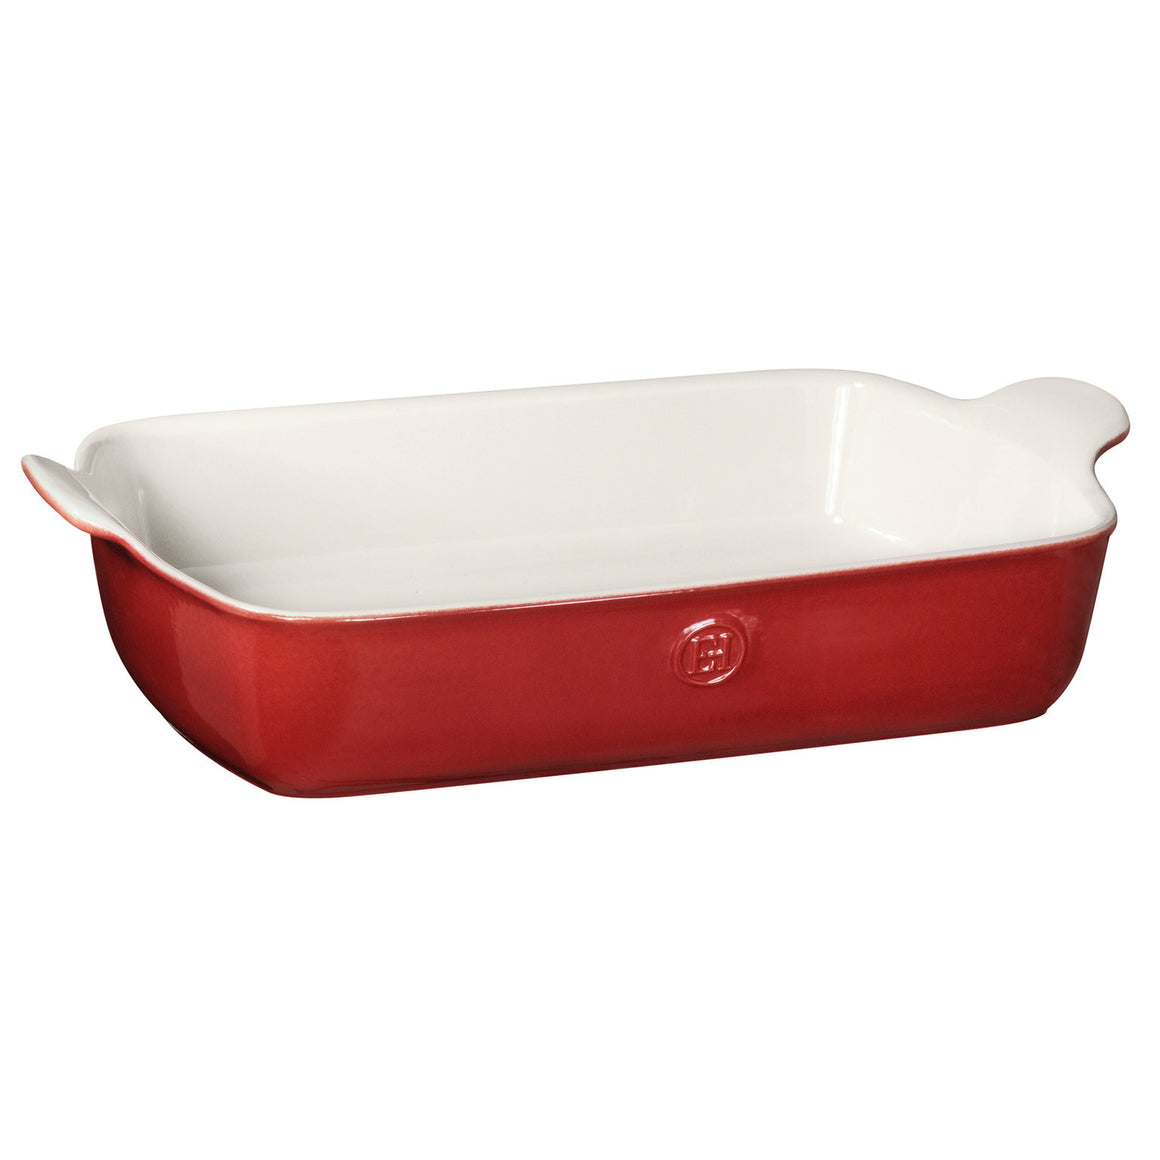 Rectangular baking dish (4.5L) - Rouge